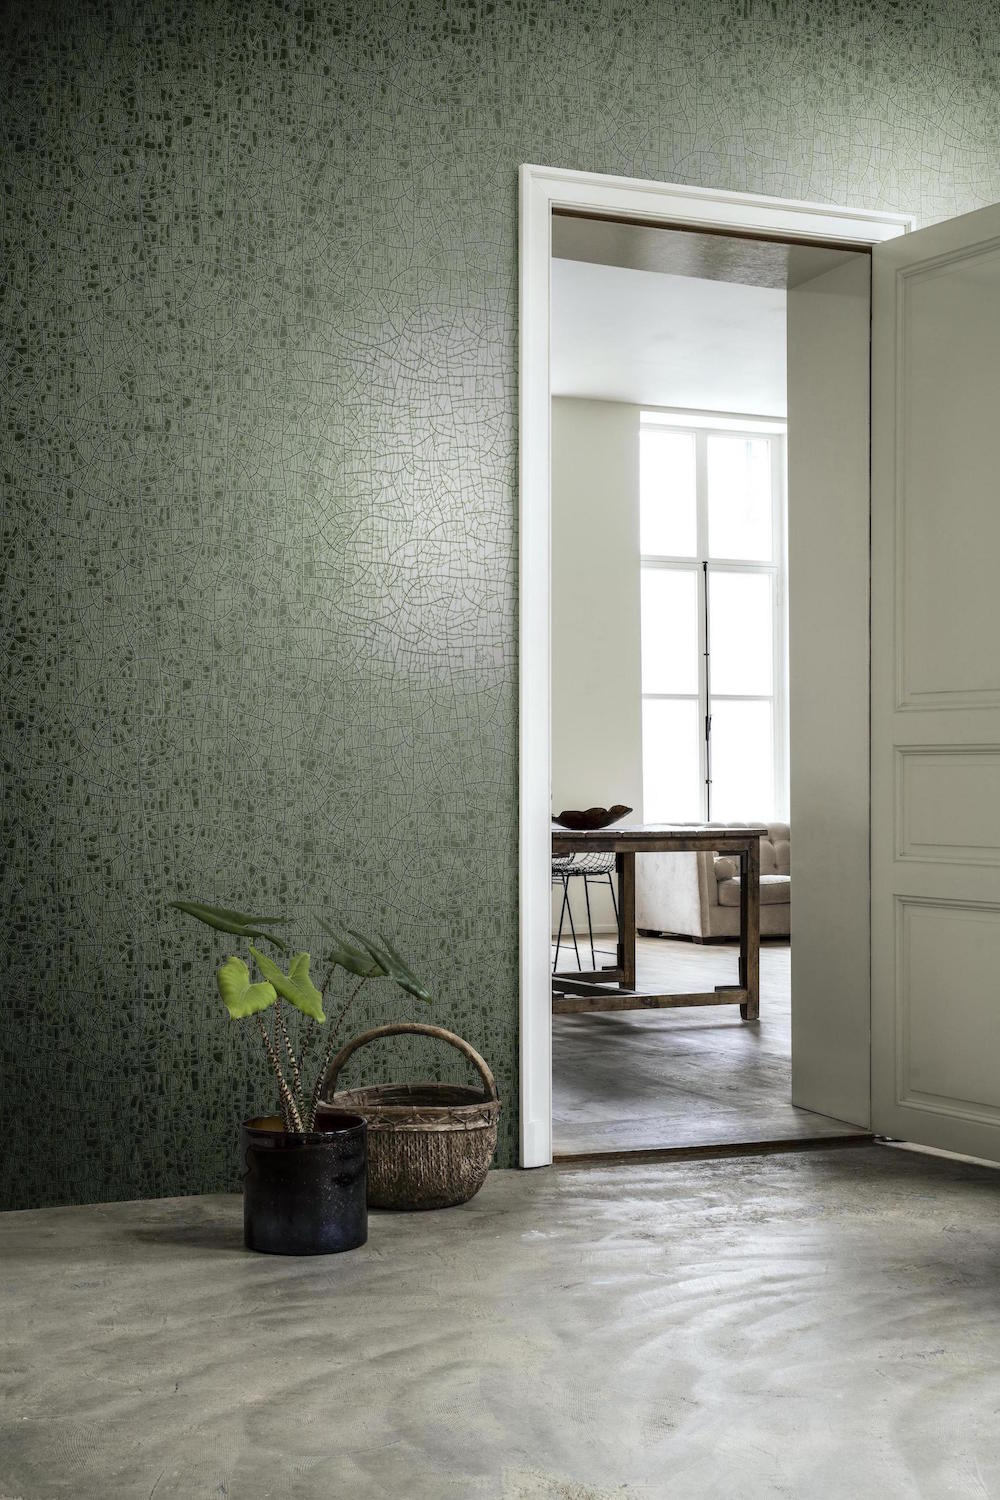 A bare room featuring Arte wallcovering